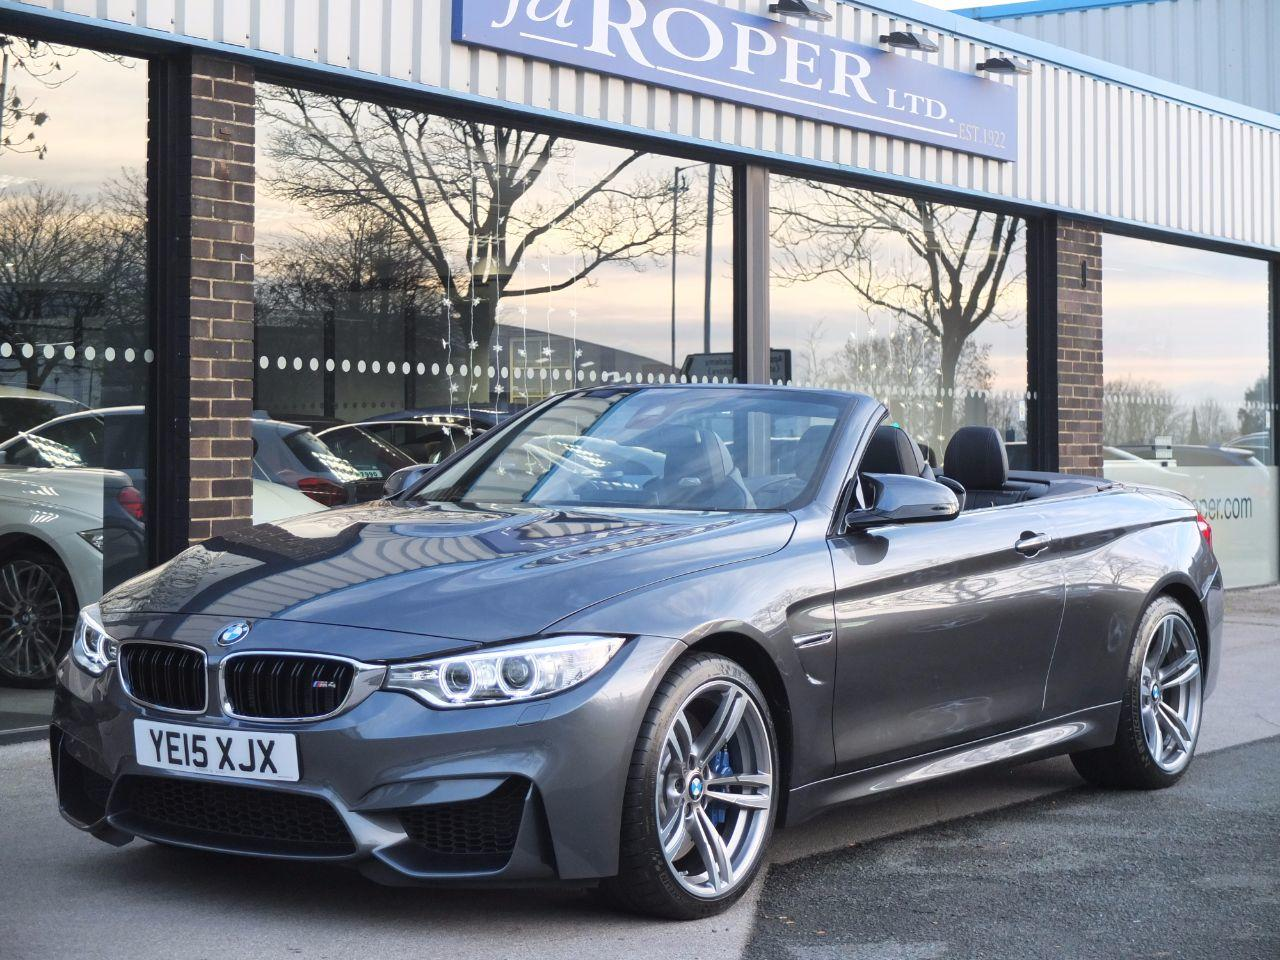 BMW M4 3.0 Convertible Manual ++++Spec Convertible Petrol Mineral Grey MetallicBMW M4 3.0 Convertible Manual ++++Spec Convertible Petrol Mineral Grey Metallic at fa Roper Ltd Bradford